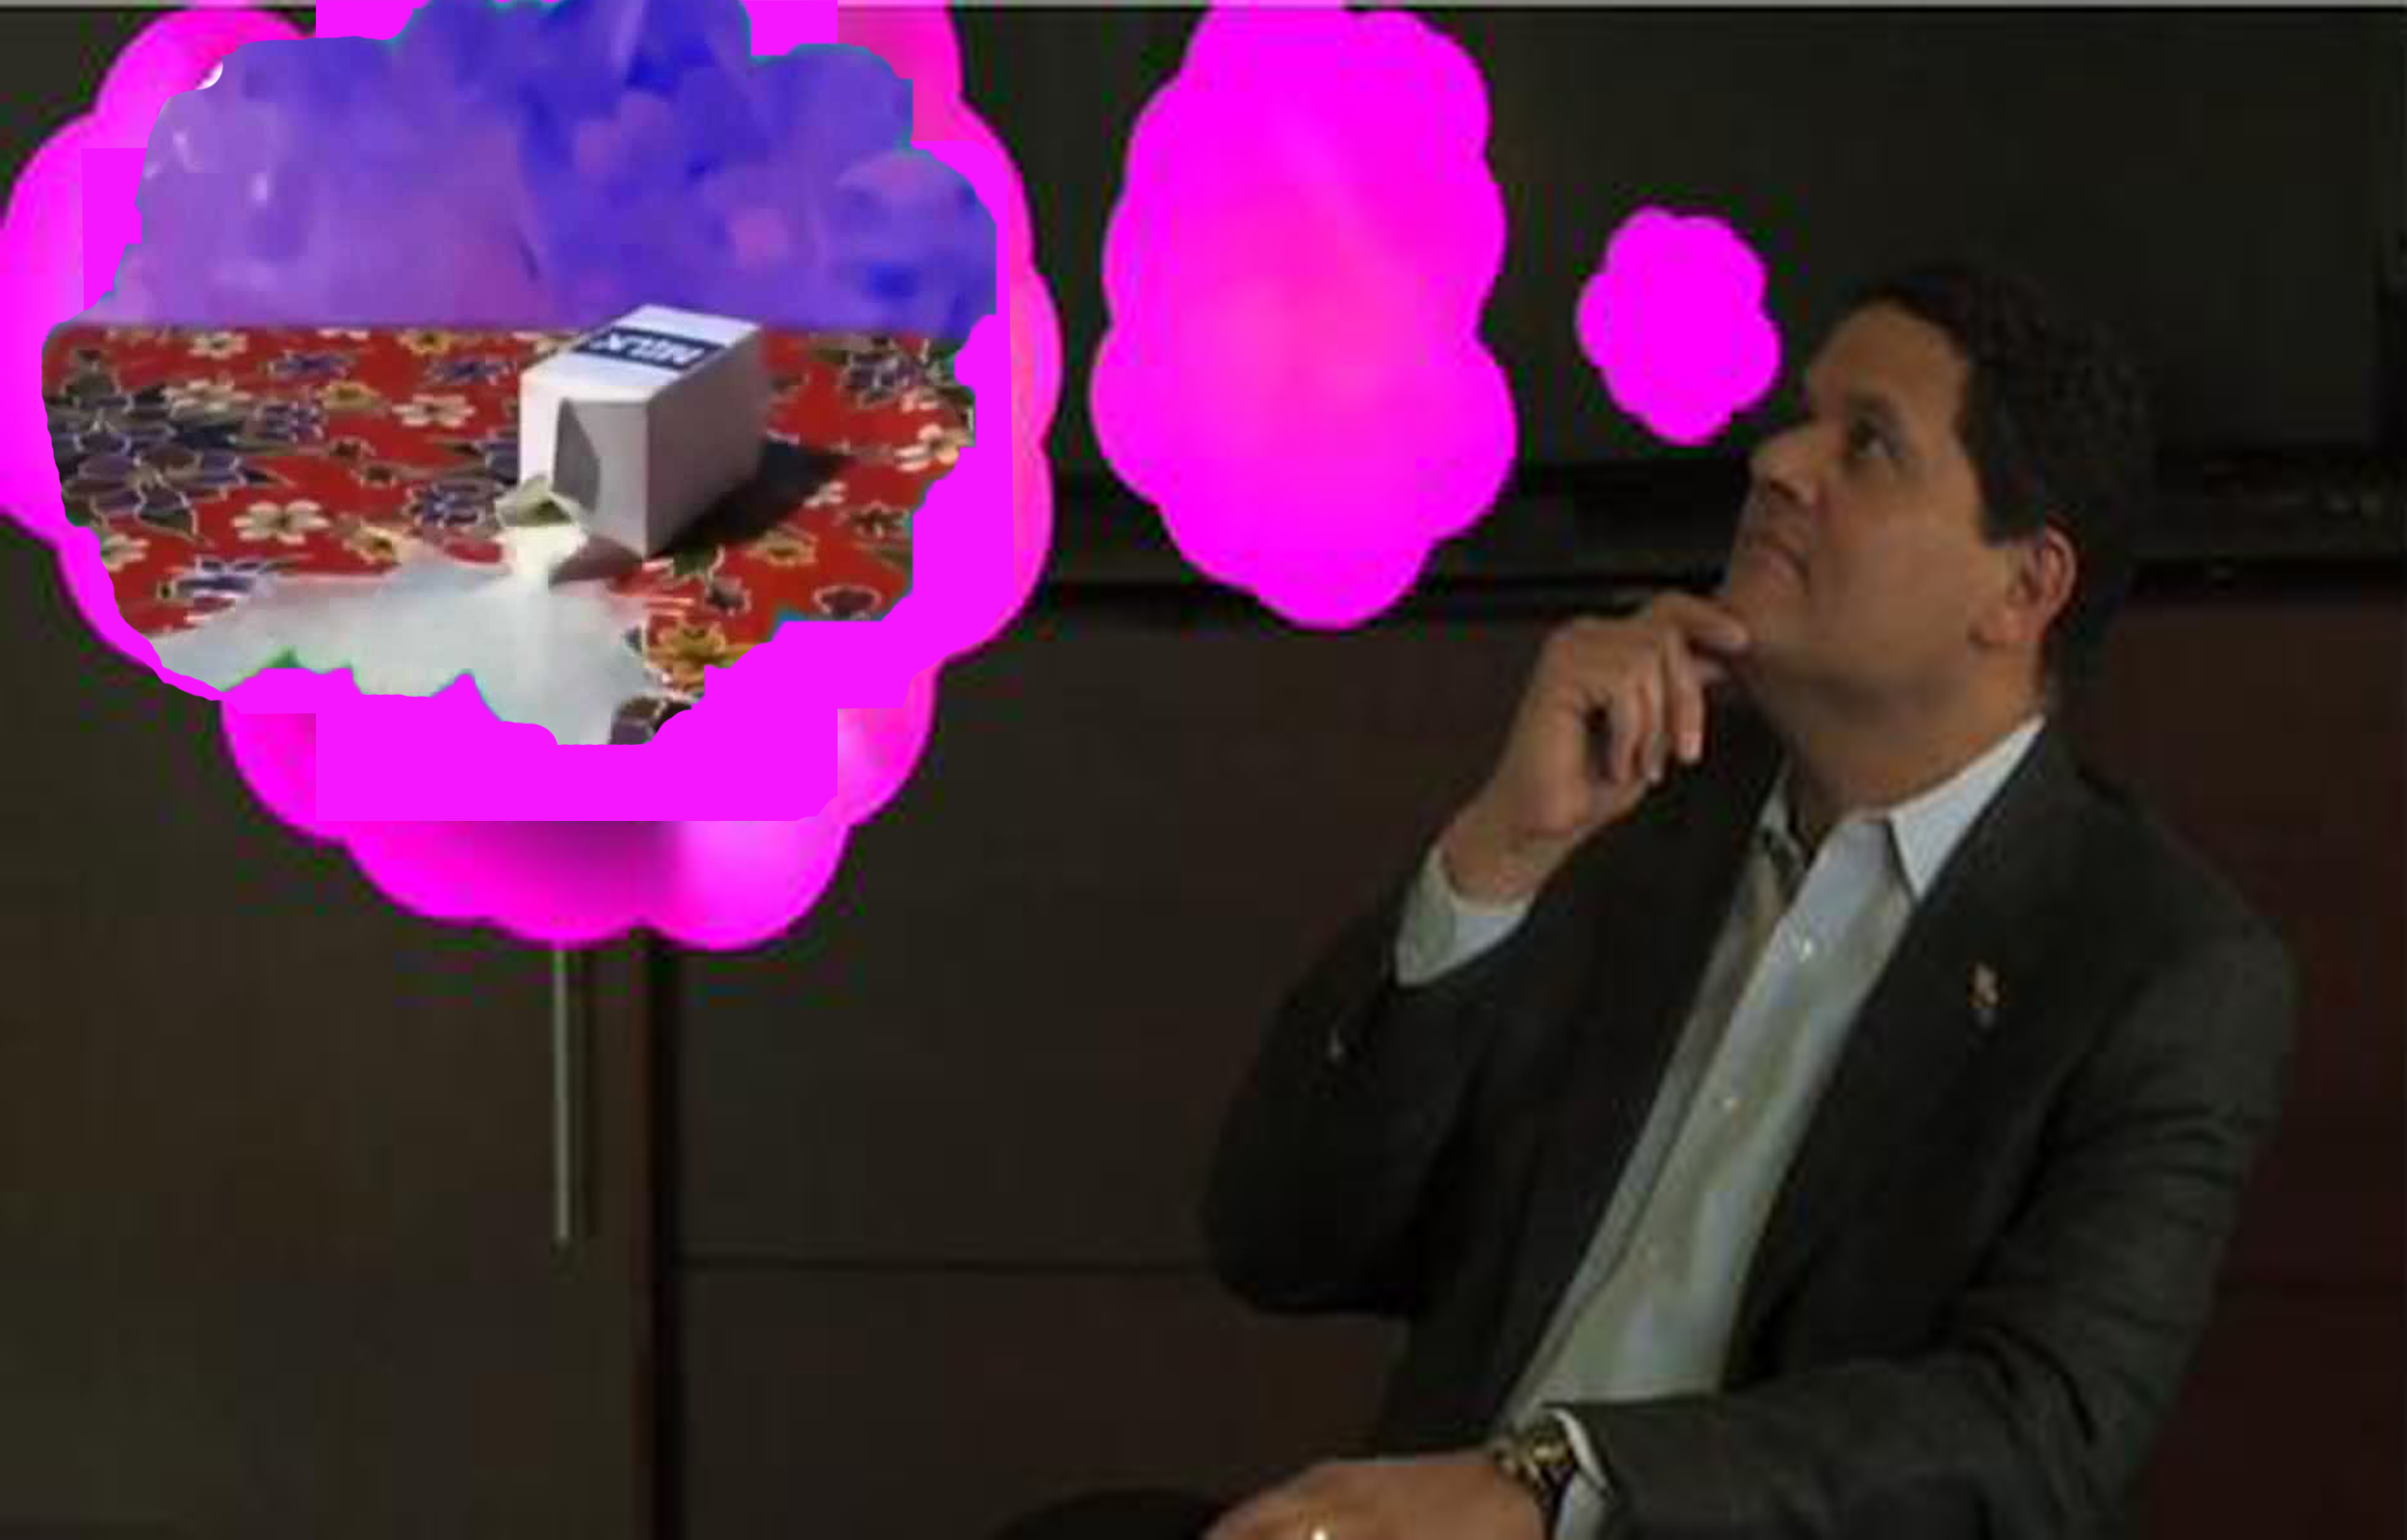 The inner machinations of Reggie's mind are an enigma